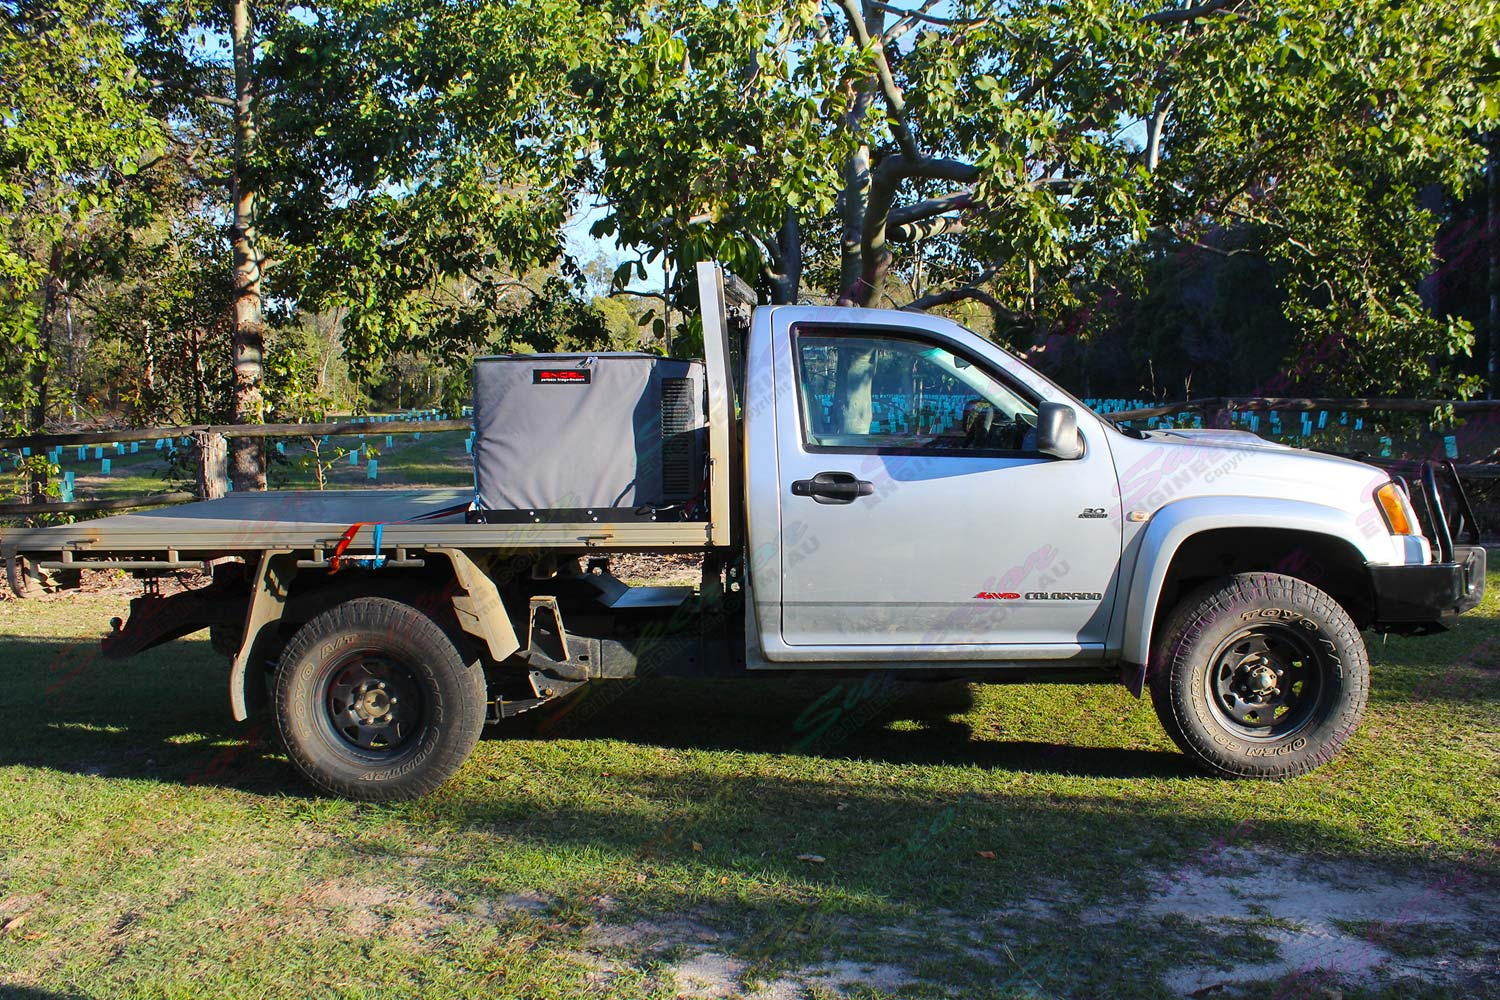 Right side view of a Silver RC Holden Colorado single cab fitted with a 45mm Tough Dog lift kit